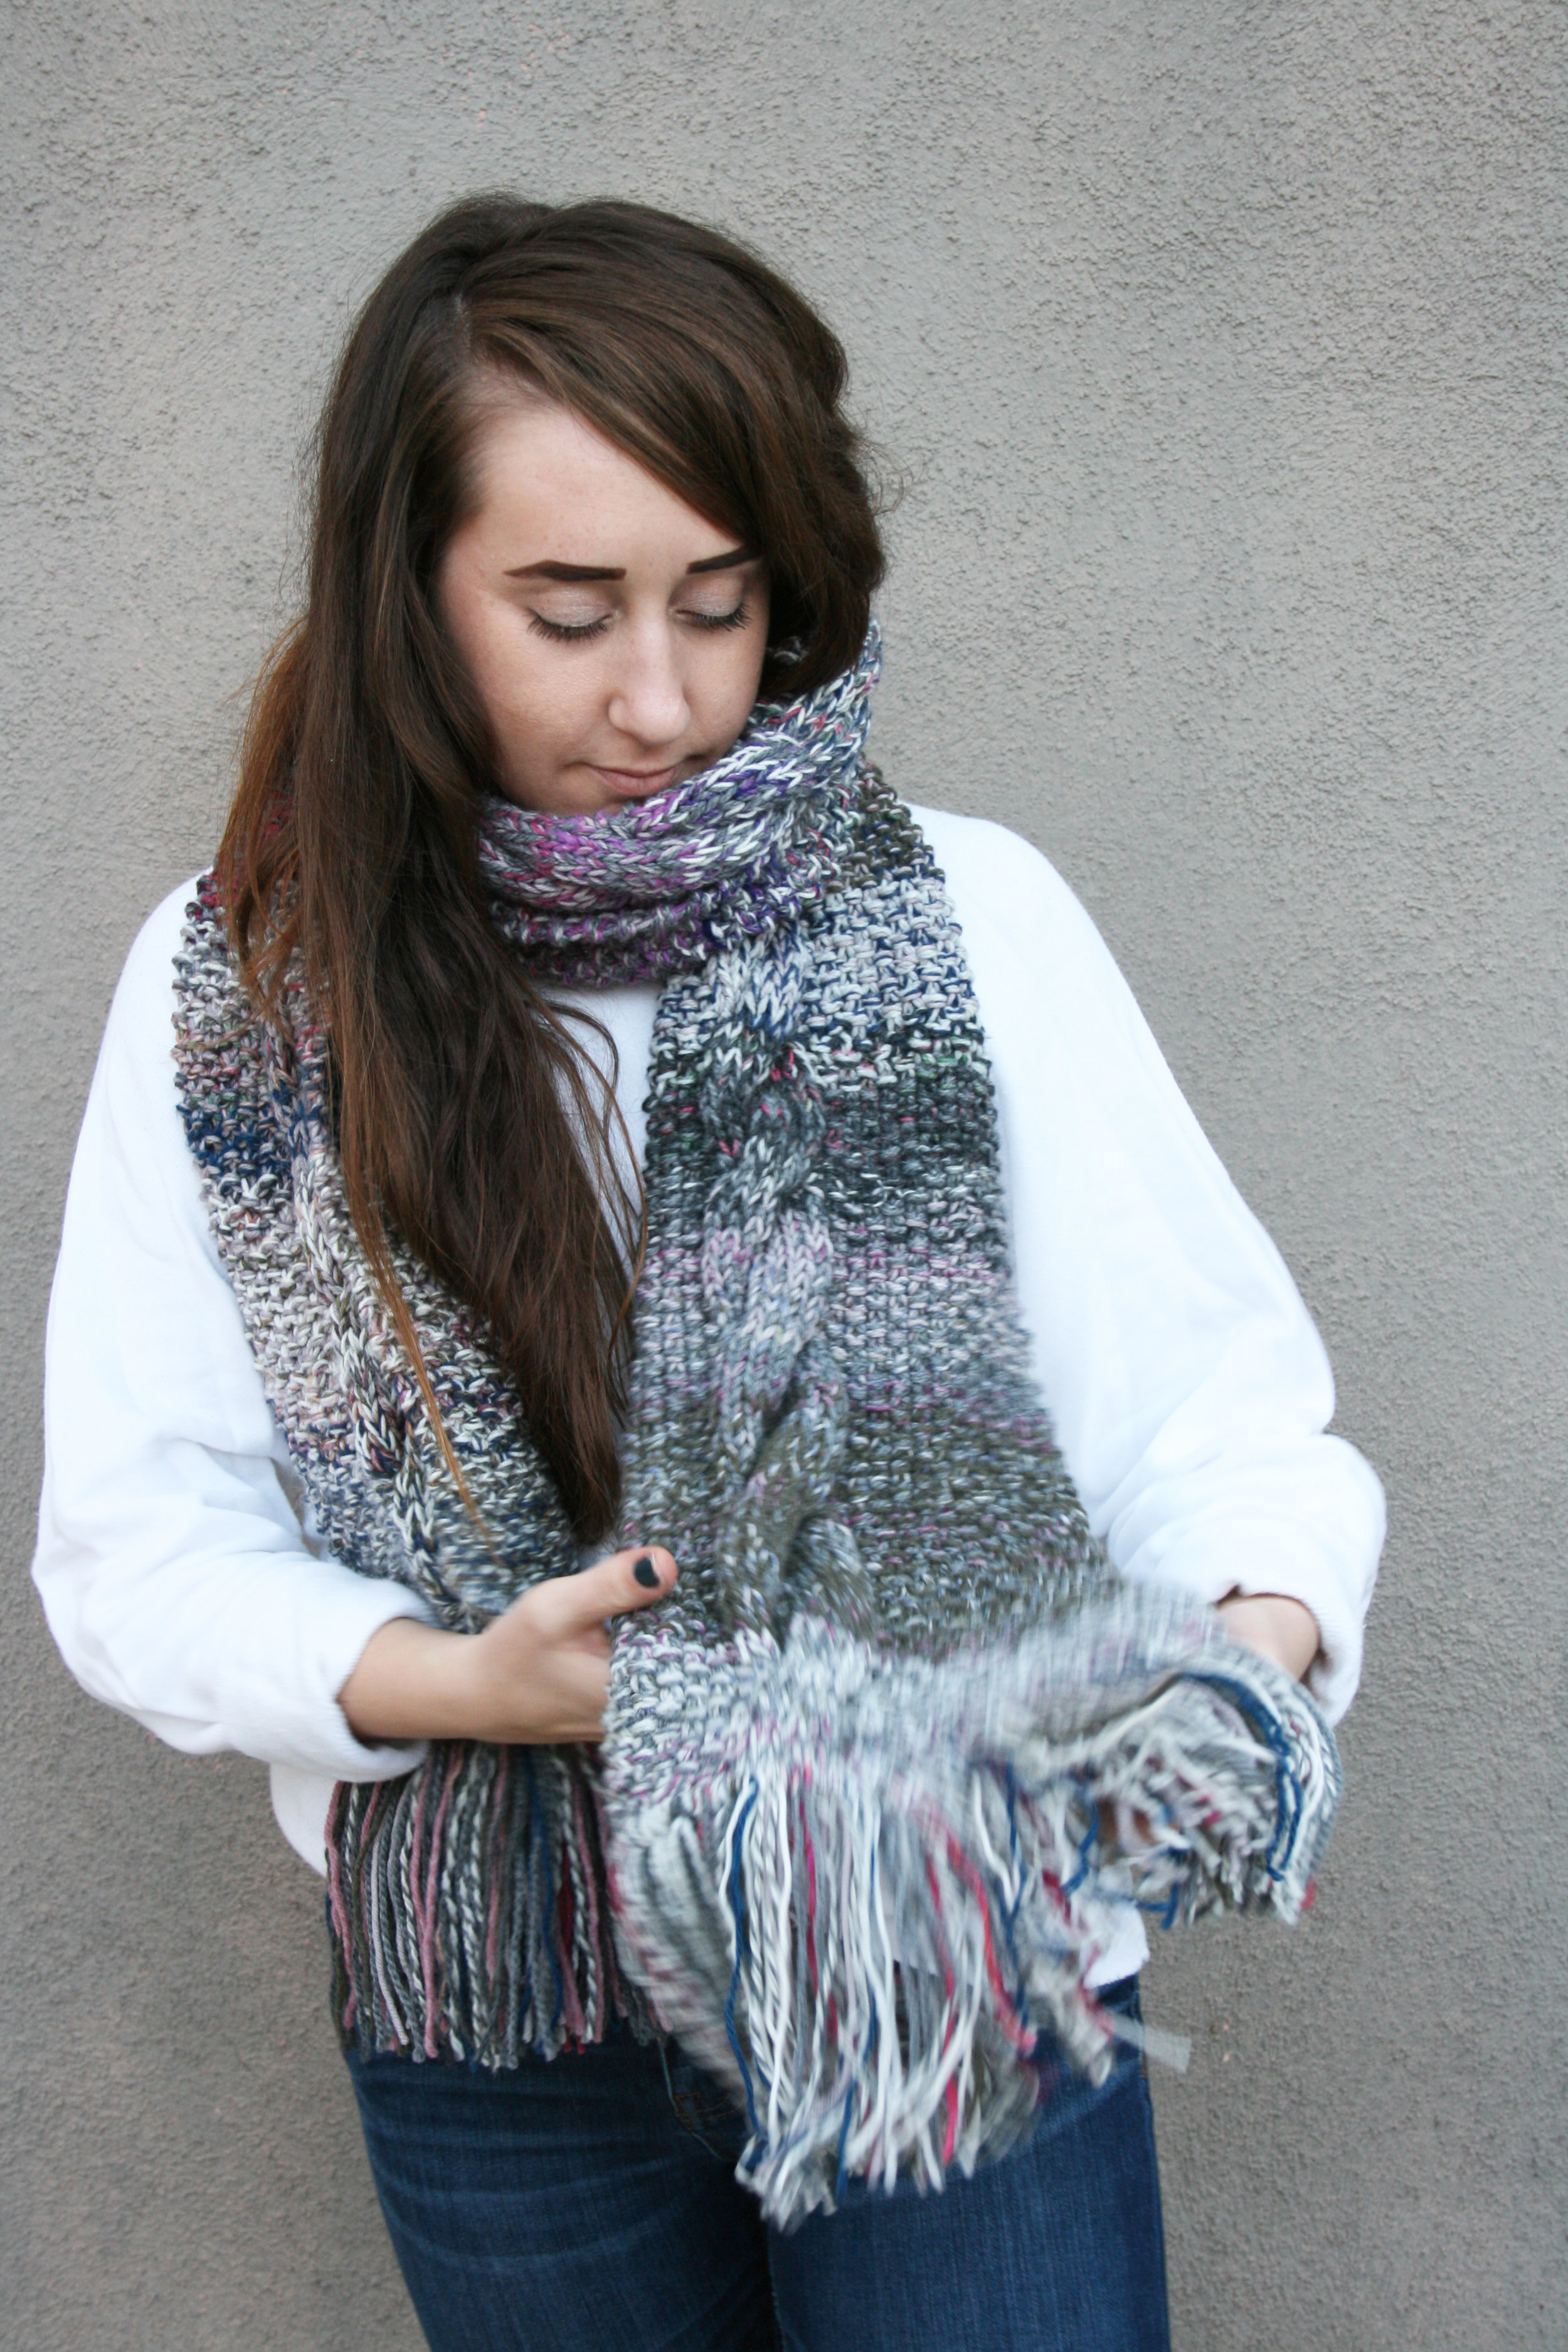 parknknit-park-williams-cable-scraps-scarf-knitting-pattern-test-knit-elisemade